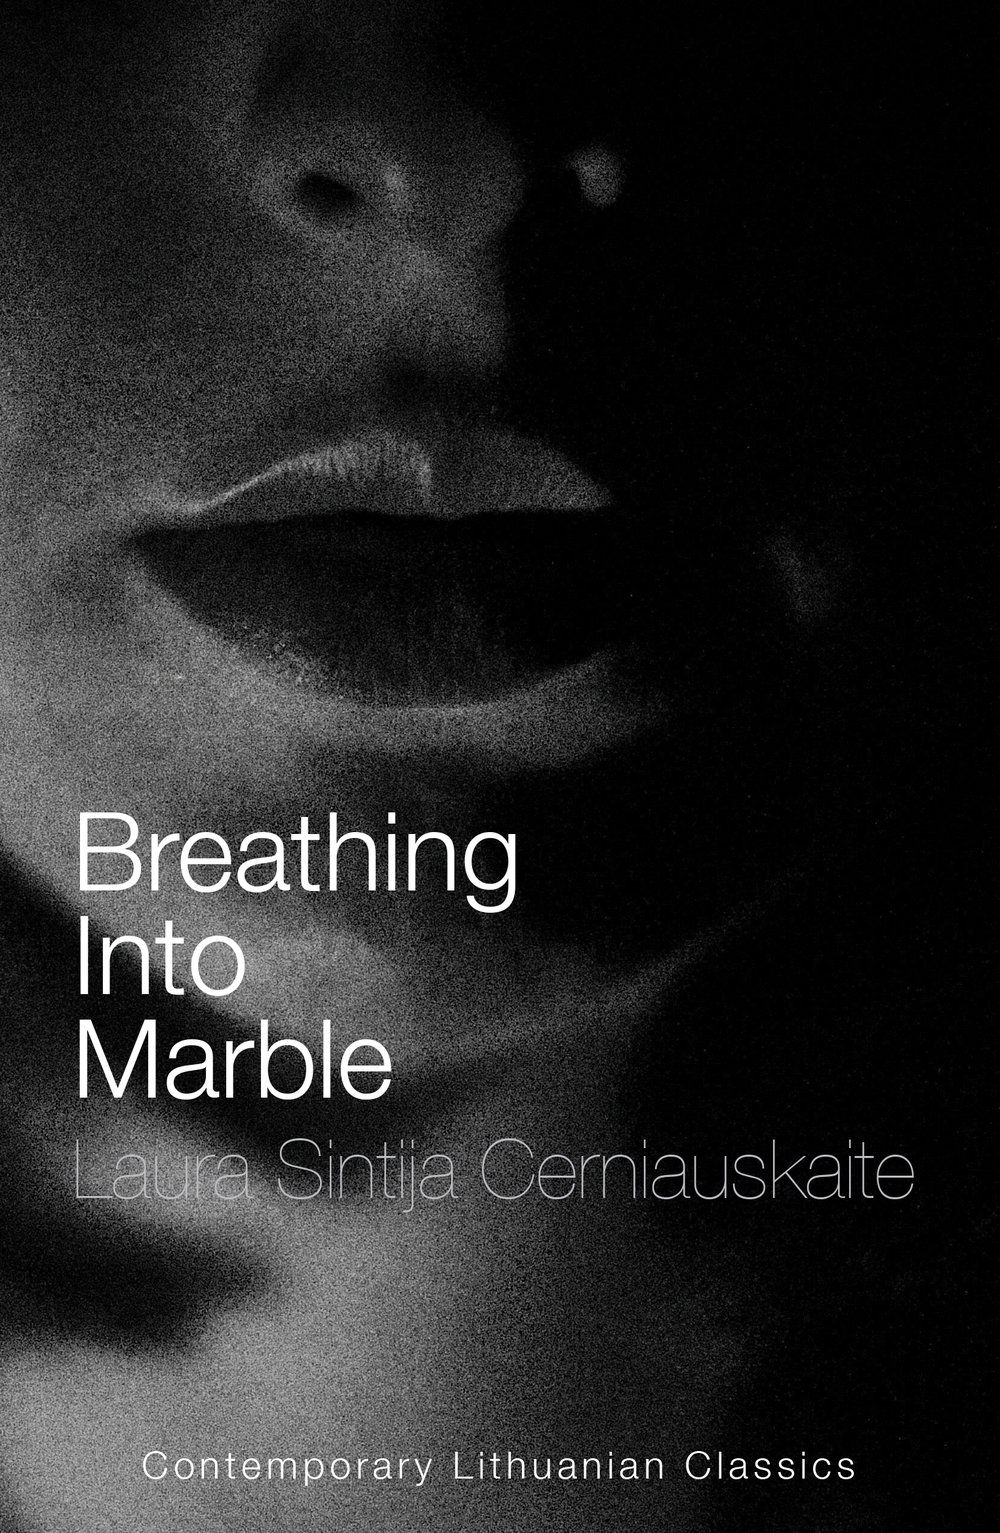 Breathing into Marble - Laura Sintija CerniauskaiteBuyWinner of the European Union Prize for LiteratureIsabelle is married with a young epileptic son. She lives with her husband on the outskirts of the city. Driven by a whim she decides to adopt Ilya, an orphan, despite the recommendations of specialists. Ilya is a troubled boy and the family quickly unravels under his malevolent influence.Breathing into Marble is a dark and poetic tale of love and violence, of art and relationships.